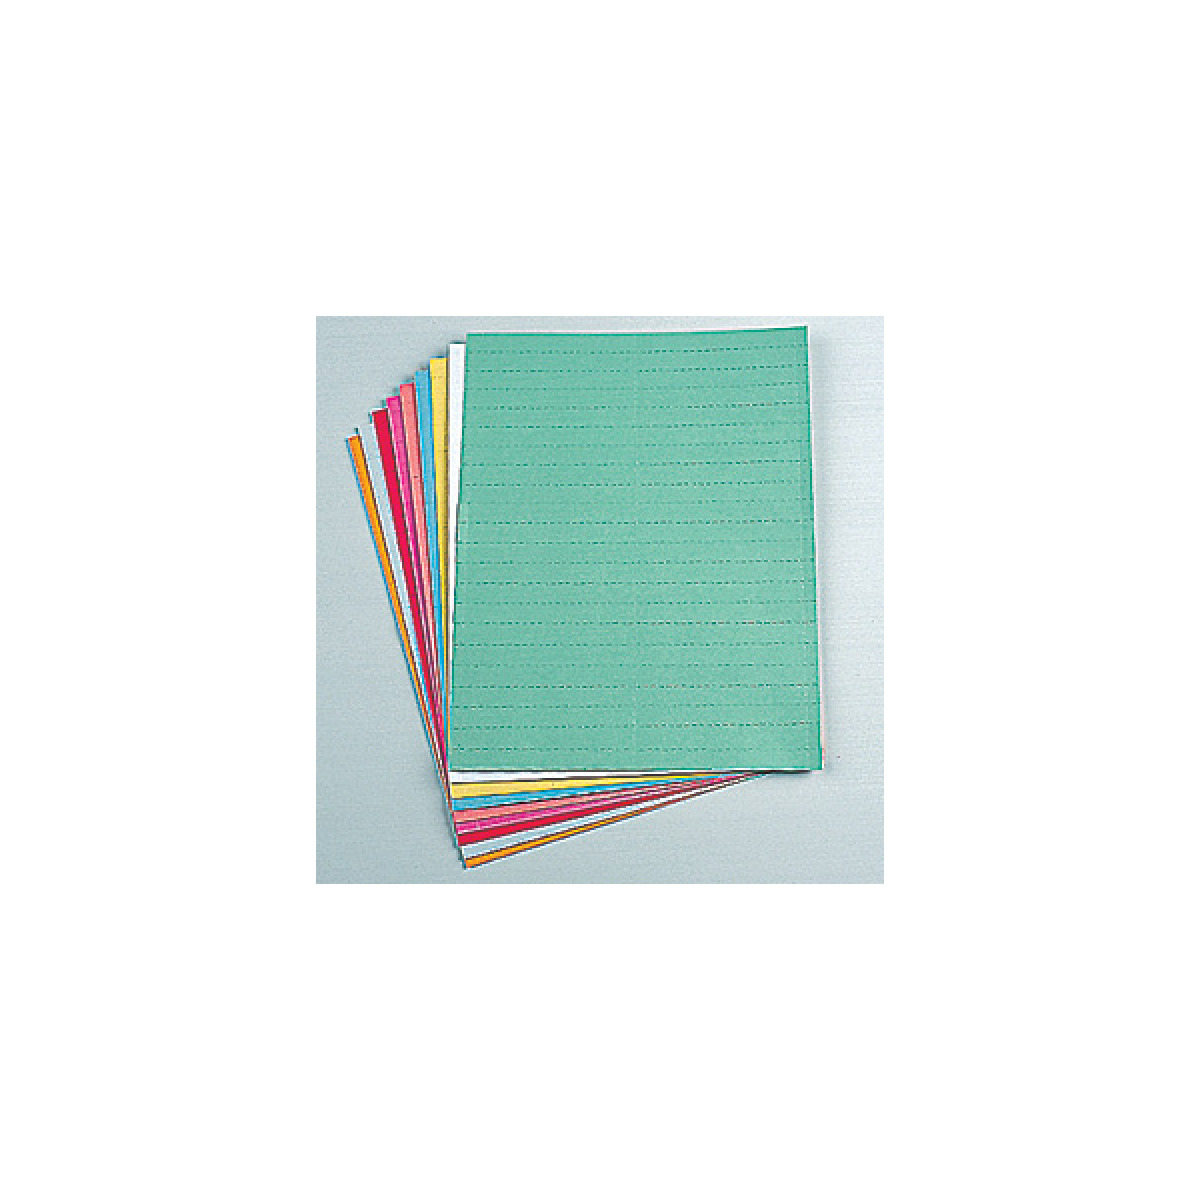 datacard sheets in 9 available colors